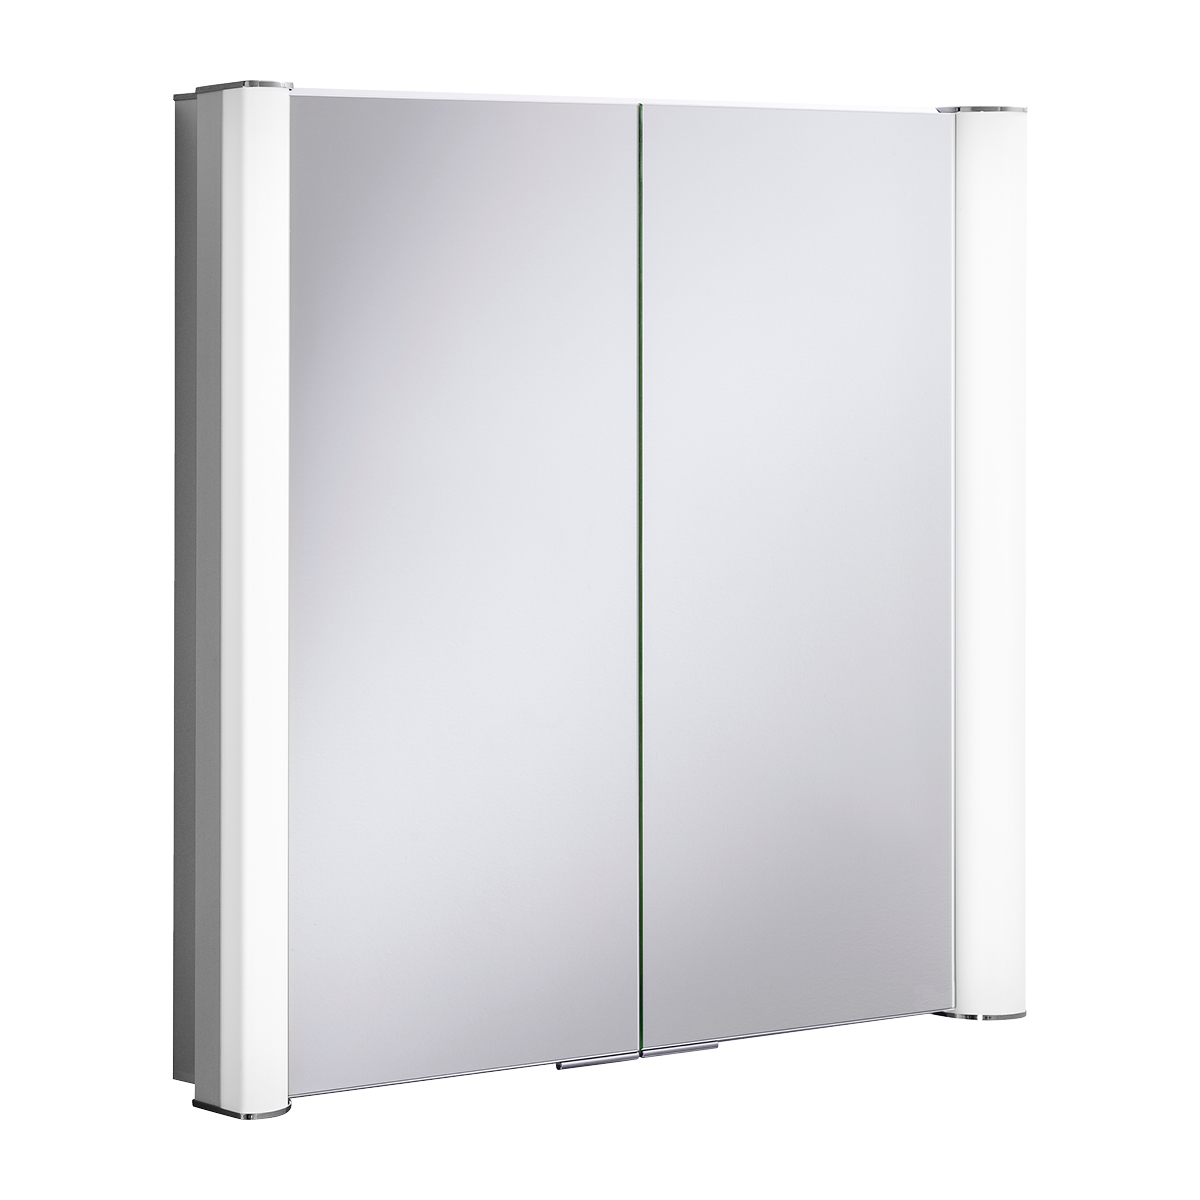 Duo 800mm illuminated mirror cabinet